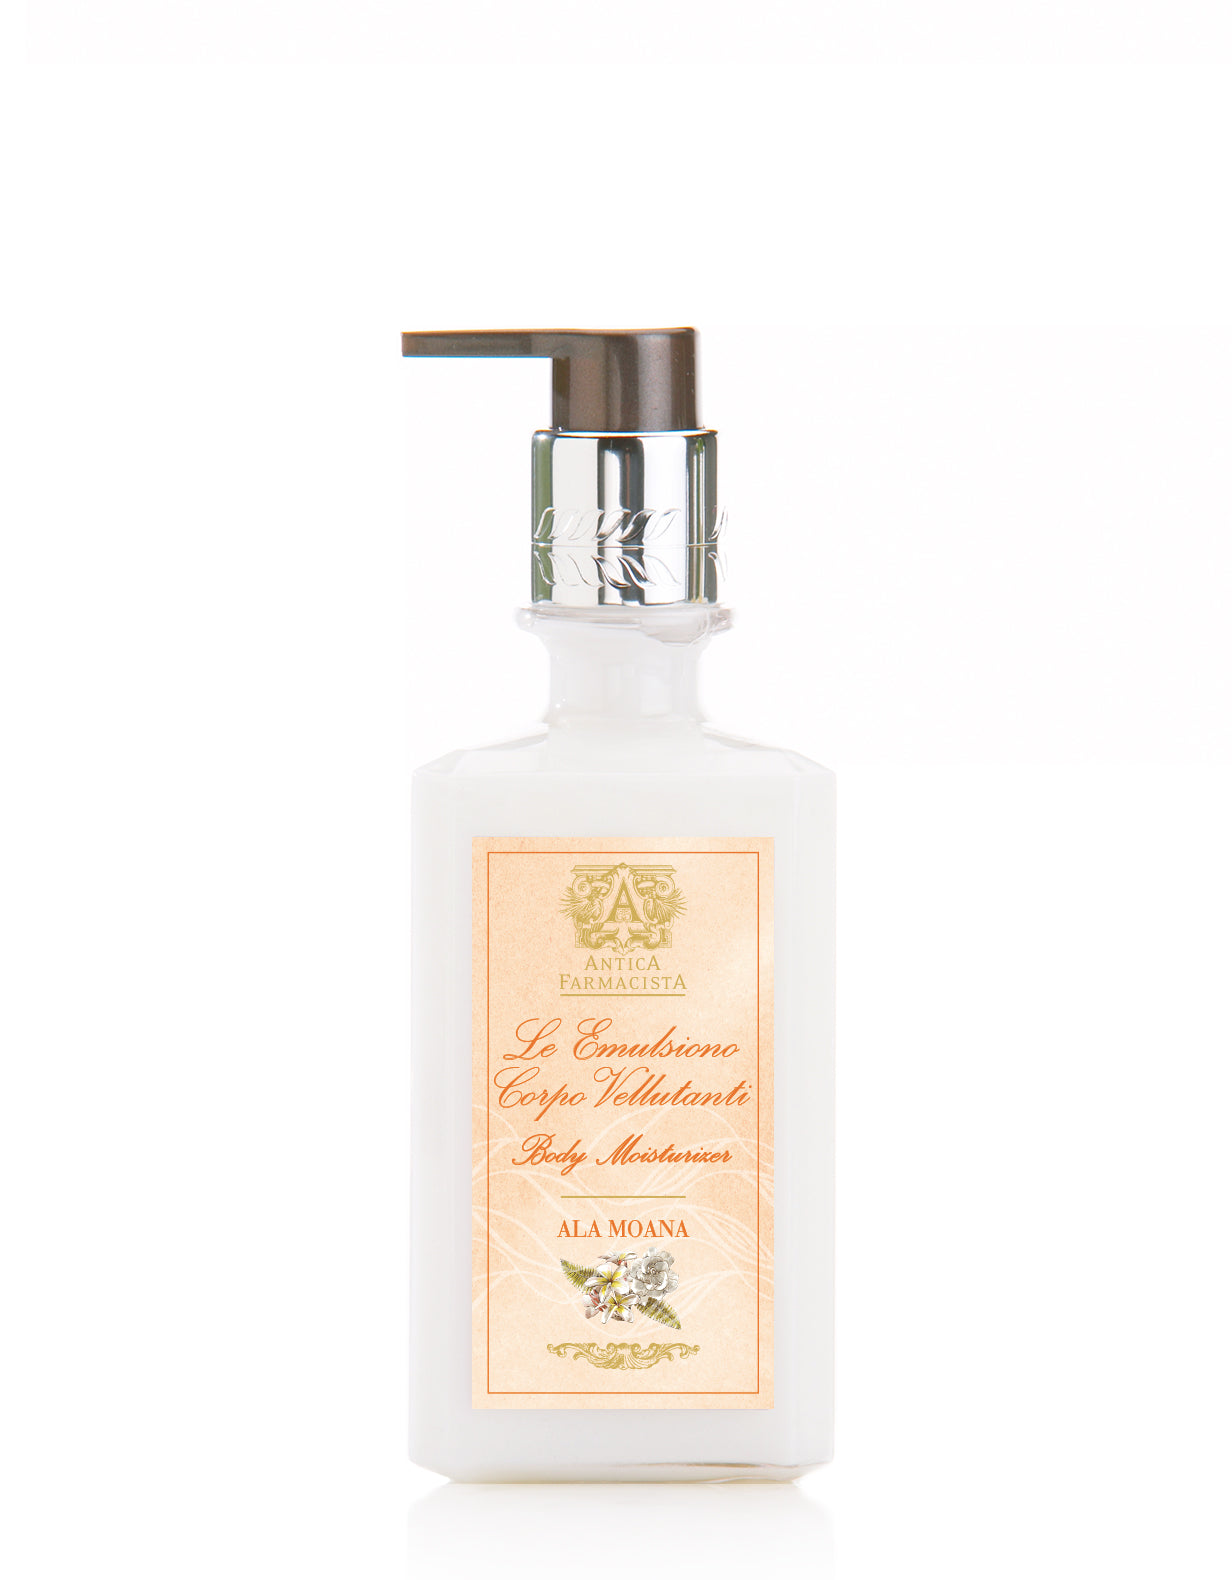 ANTICA FARMACISTA - 10 OZ BODY MOISTURIZER IN ALA MOANA